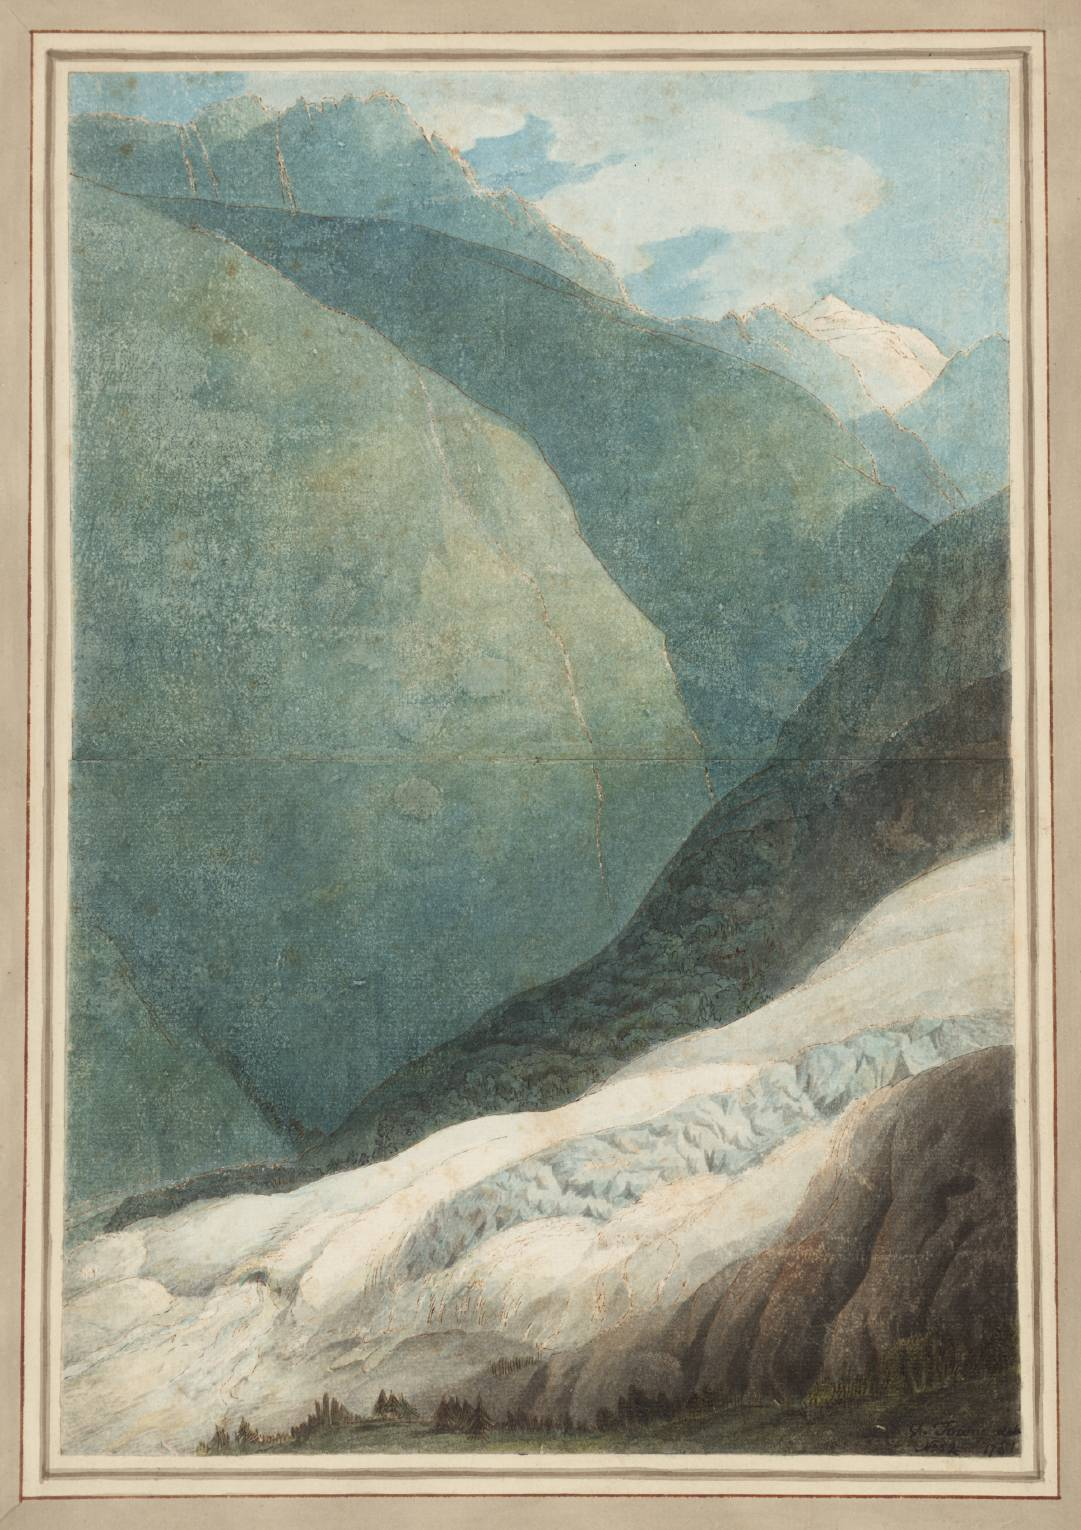 The Source of the Arveyron, Francis Towne, 1781 (Tate)